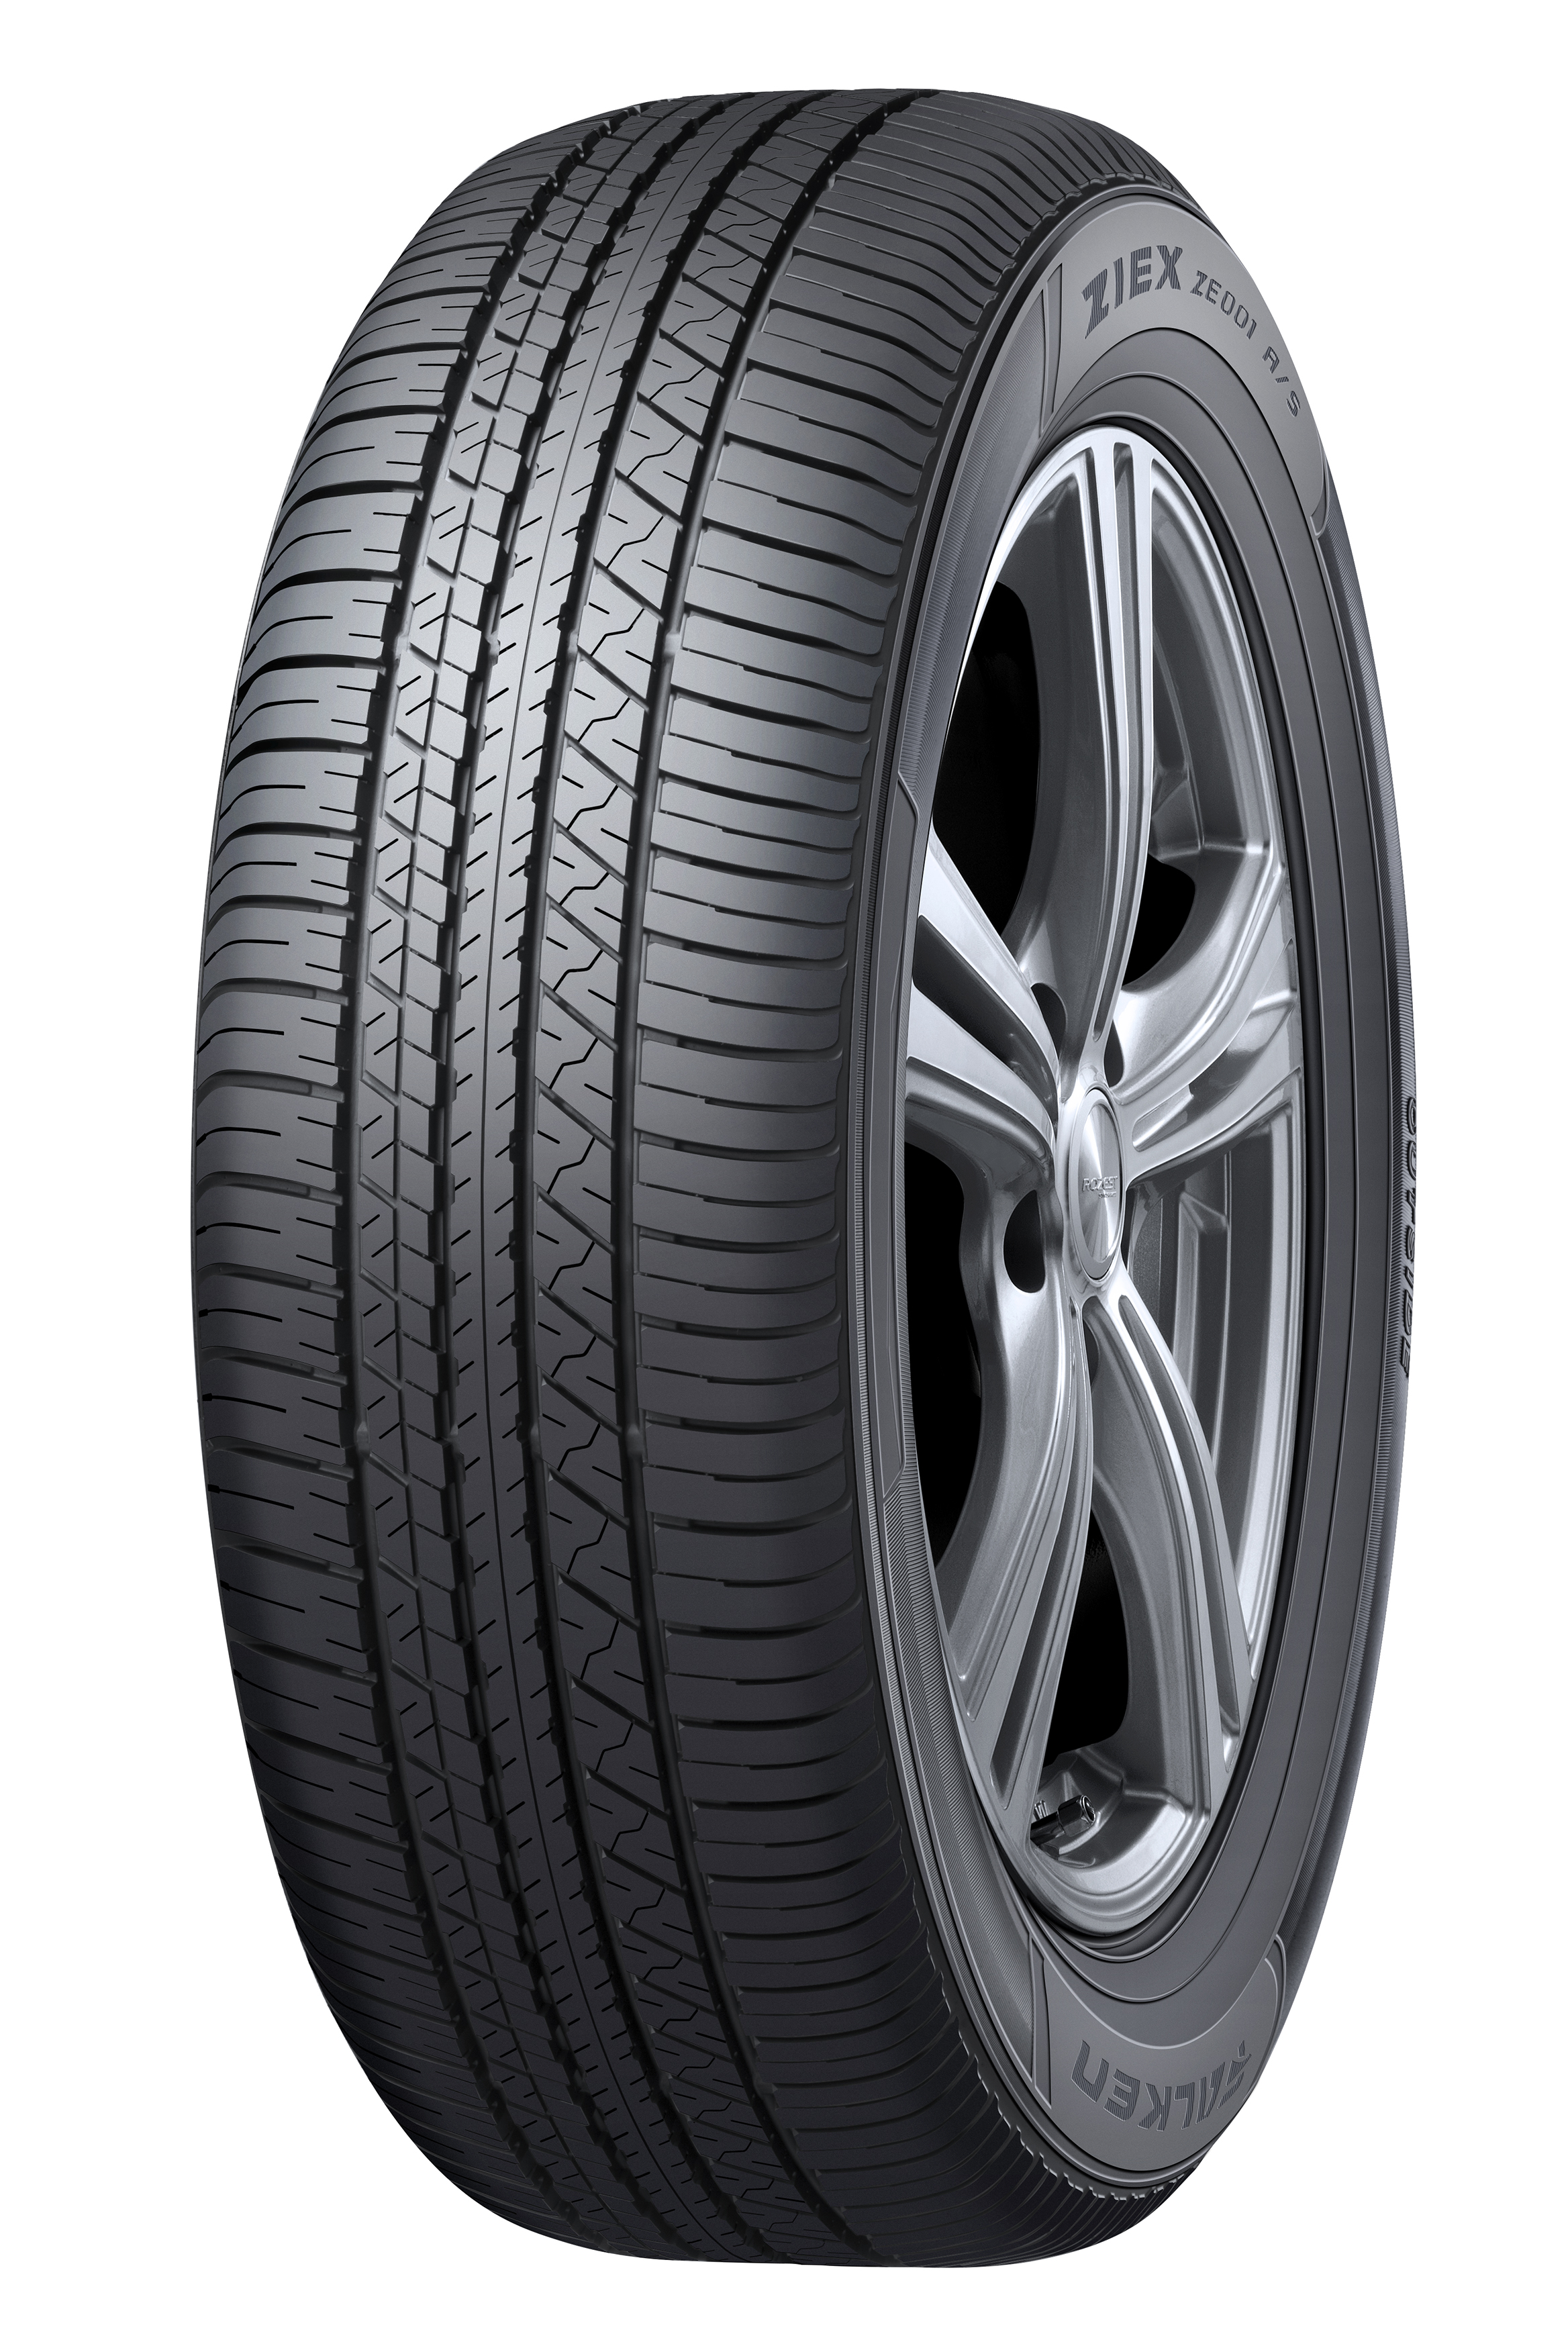 A First for a Falken-Brand Tire: OE Fitment on a Nissan